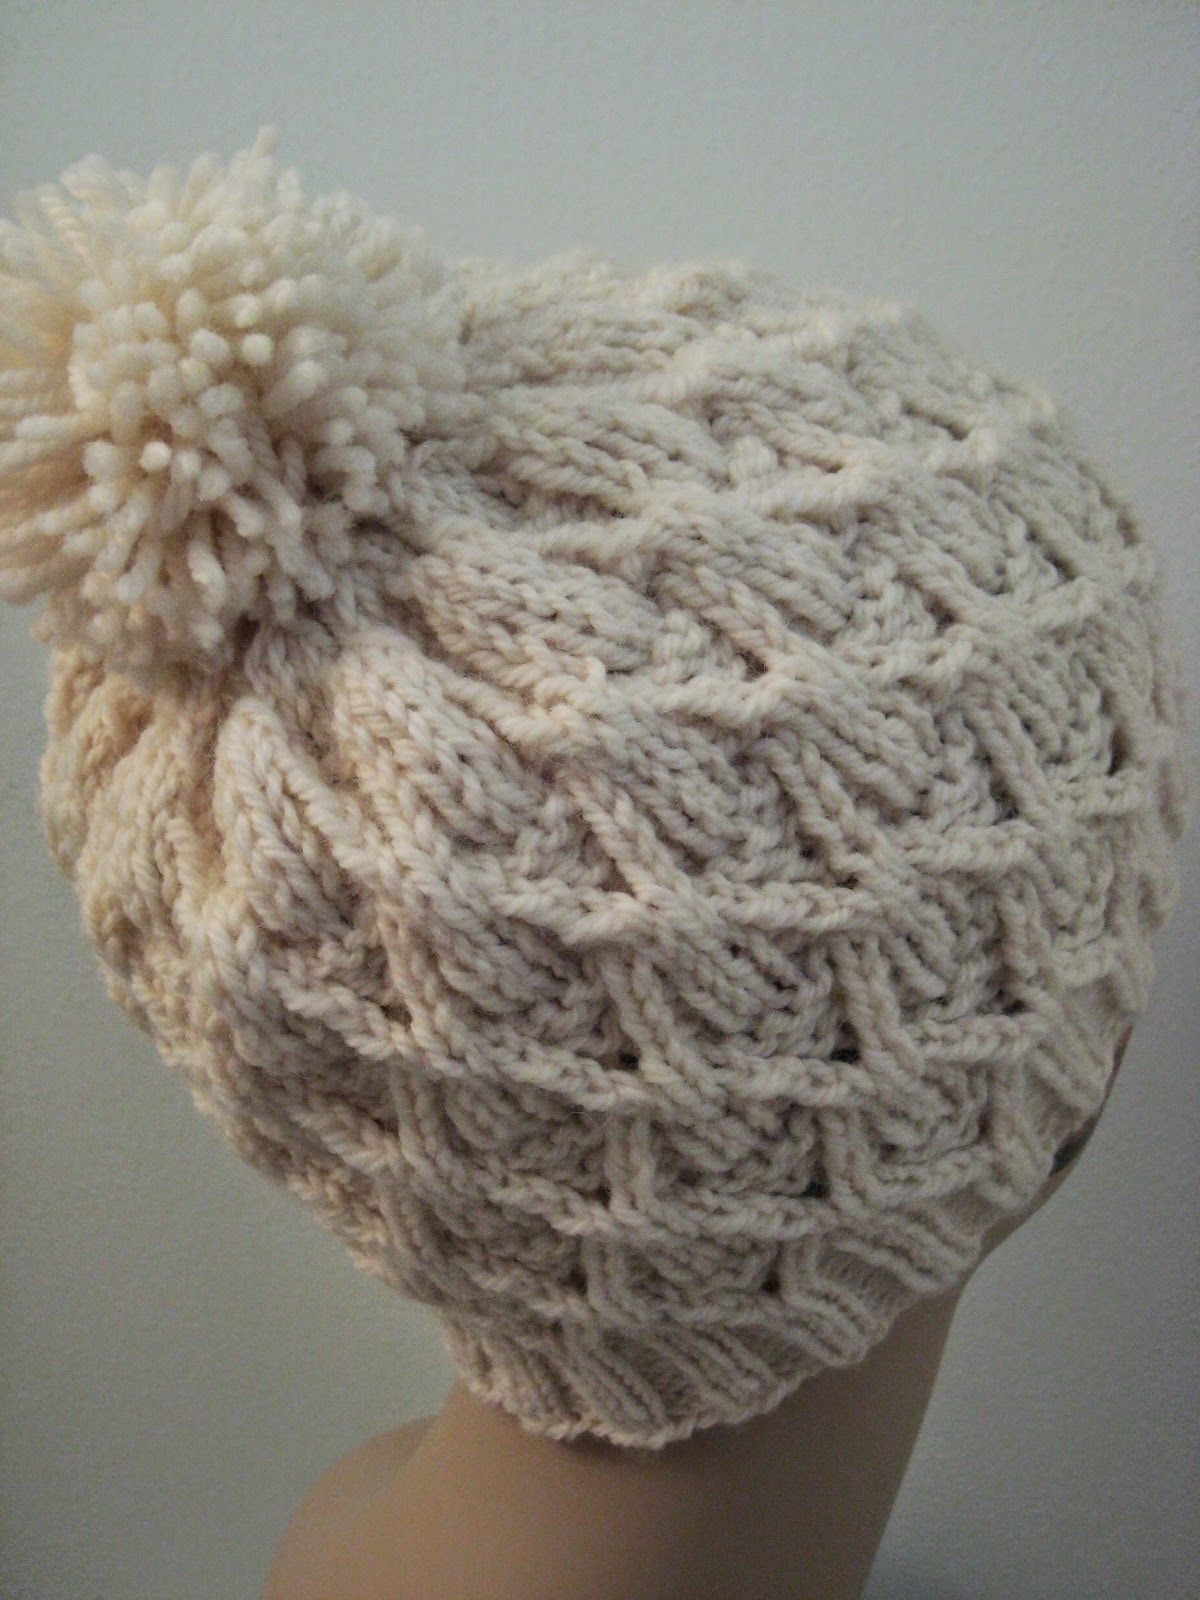 Free Hat Knitting Patterns | Pinterest | Knitted hat patterns, Knit ...